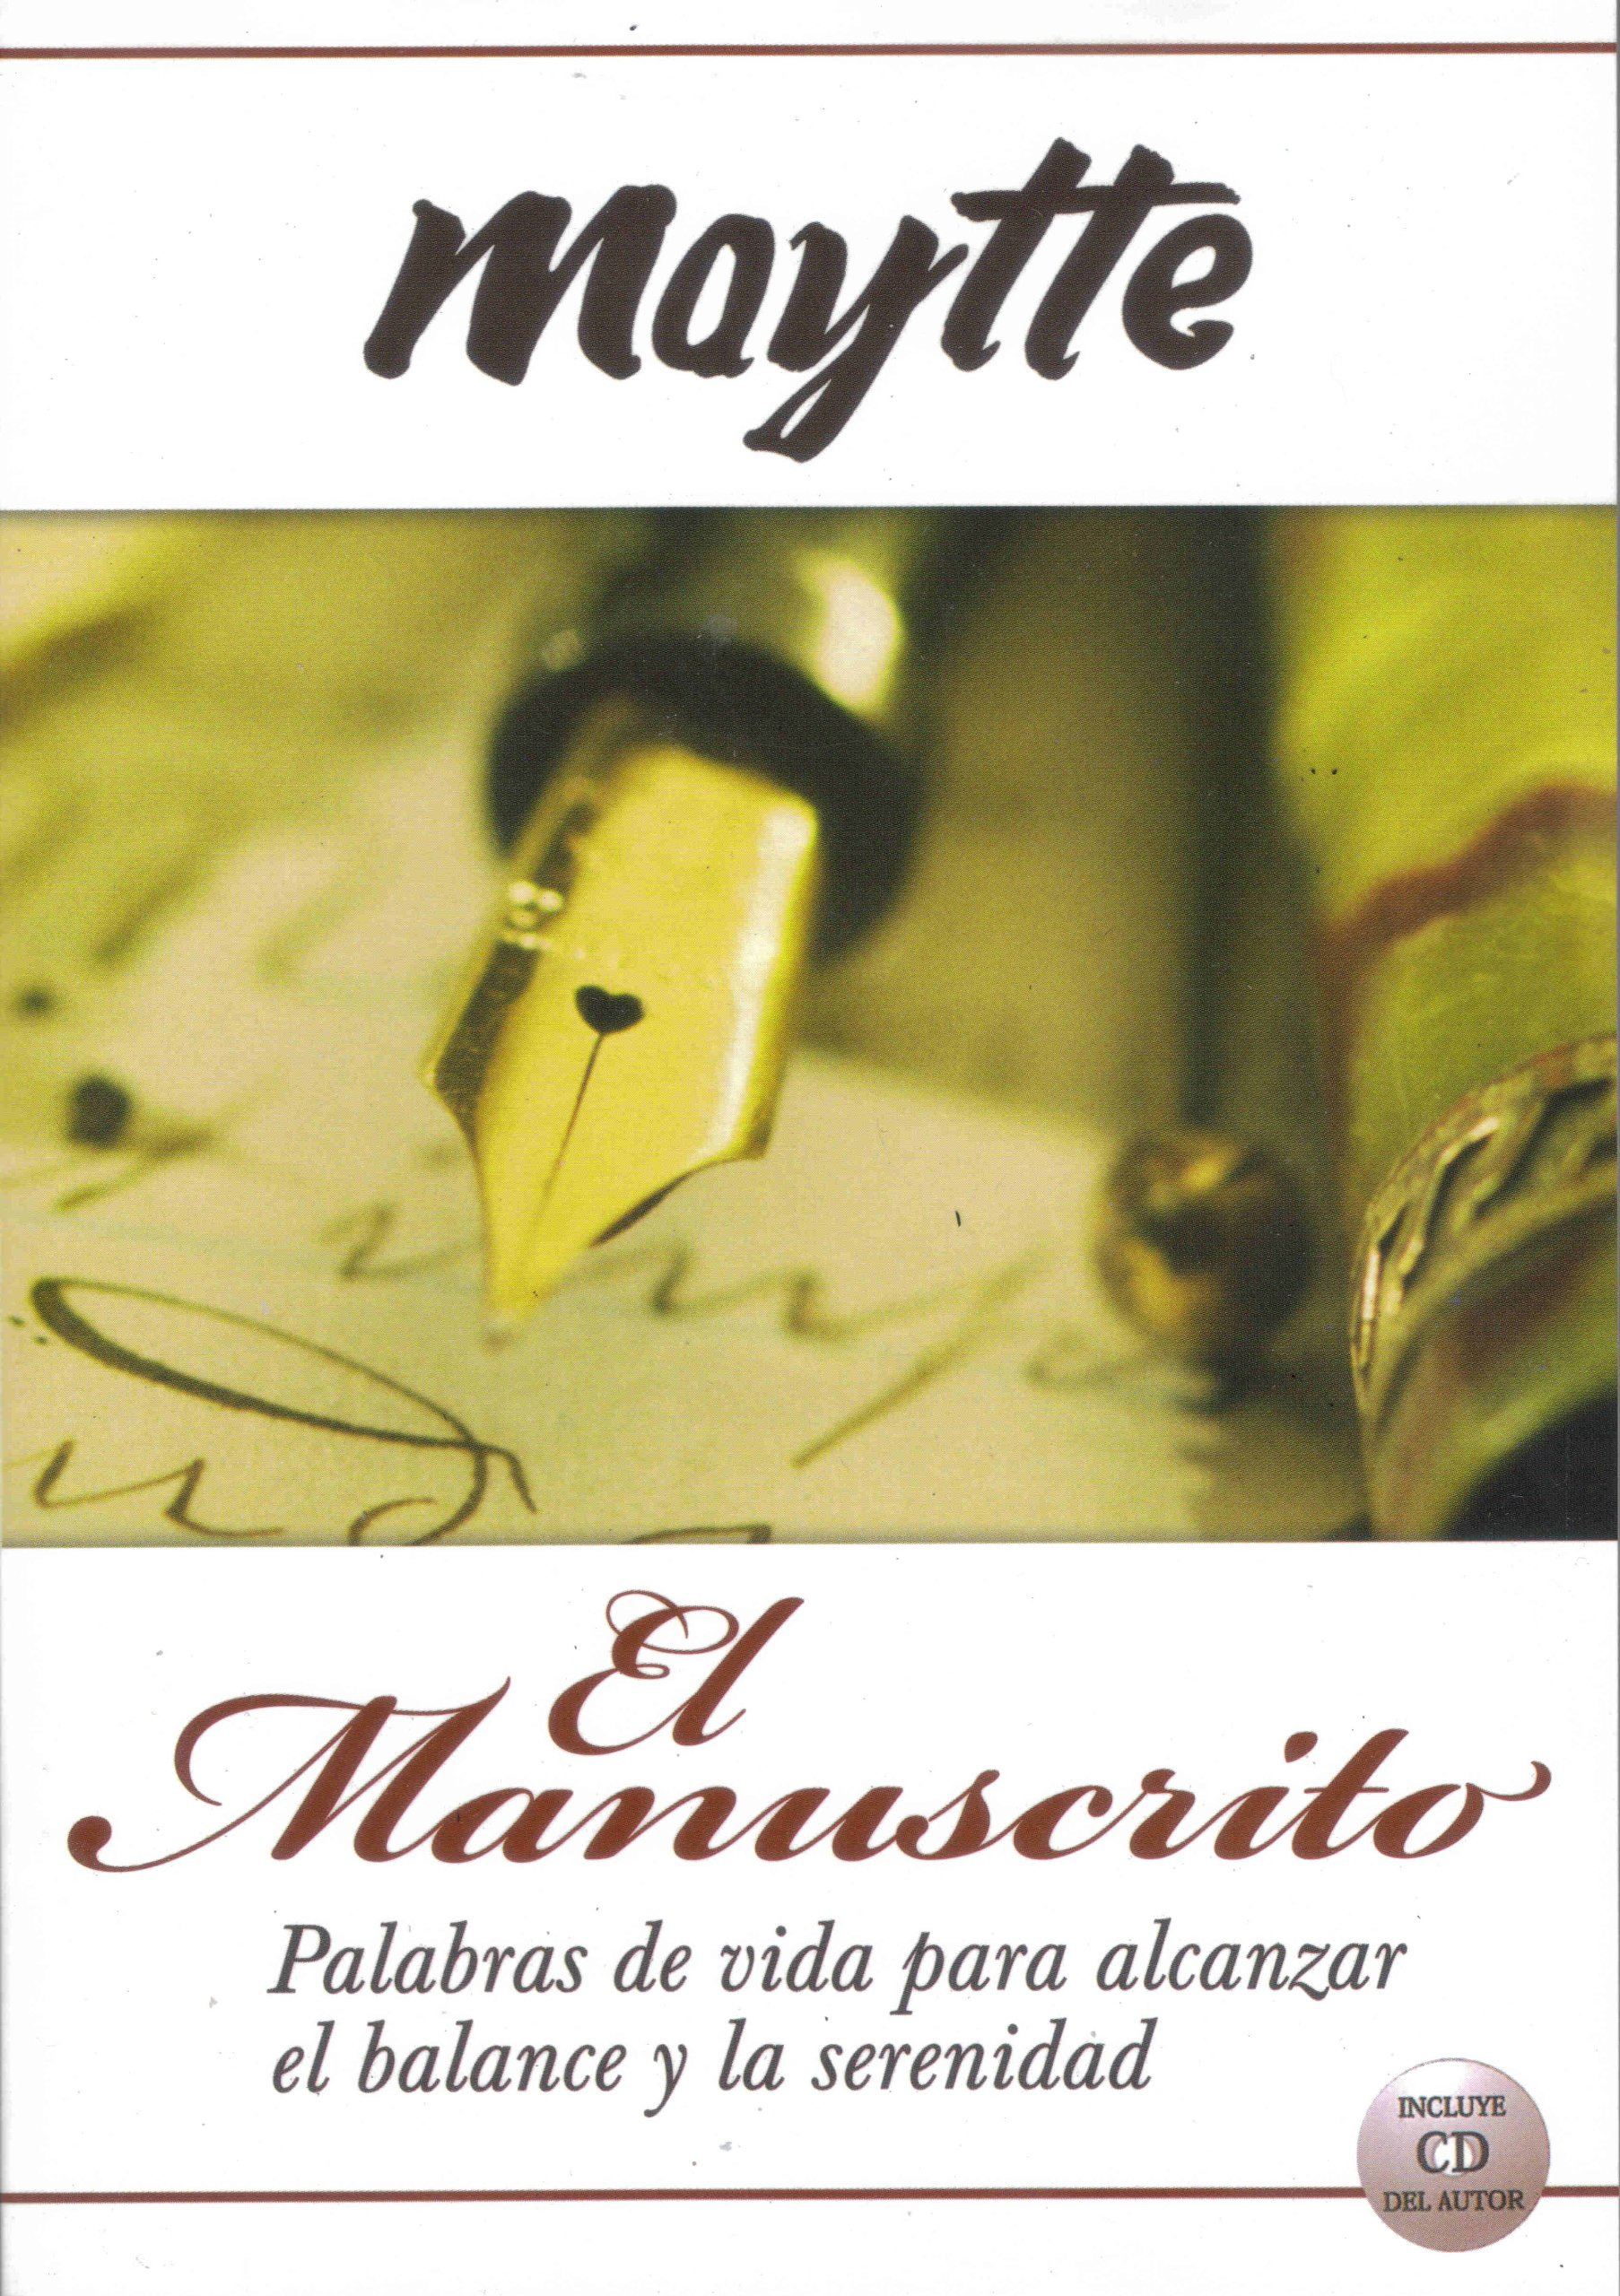 El Manuscrito (Spanish Edition): Maytte Sepulveda: 9789800711248: Amazon.com: Books